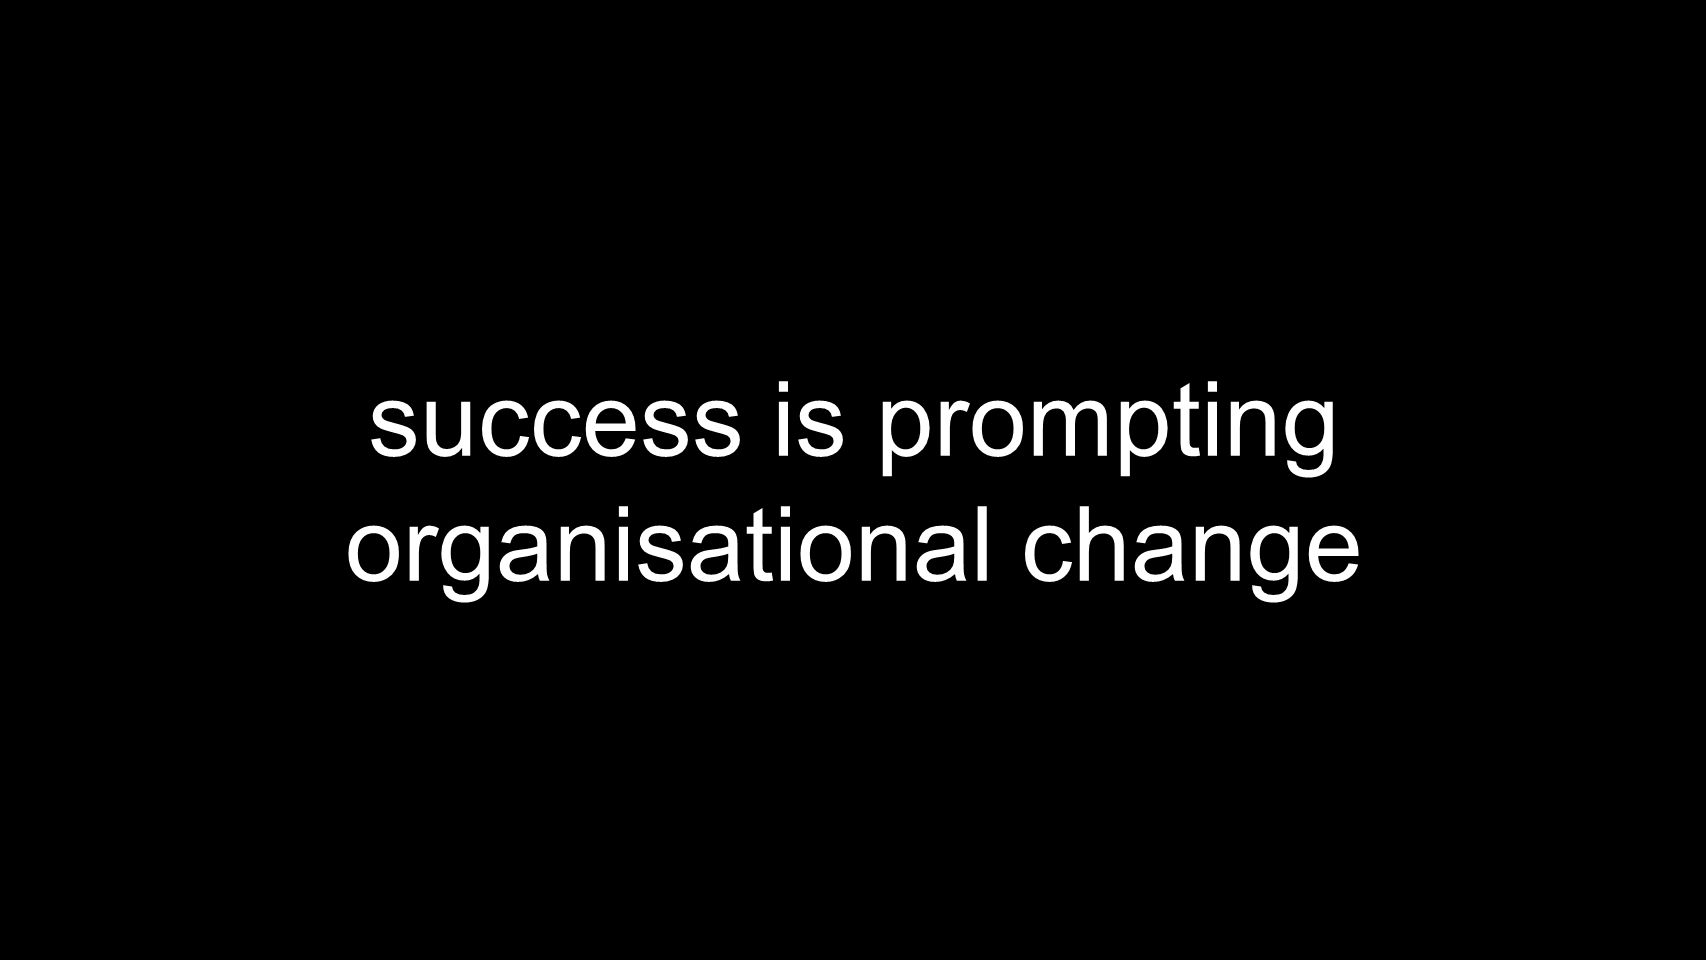 success is prompting organisational change